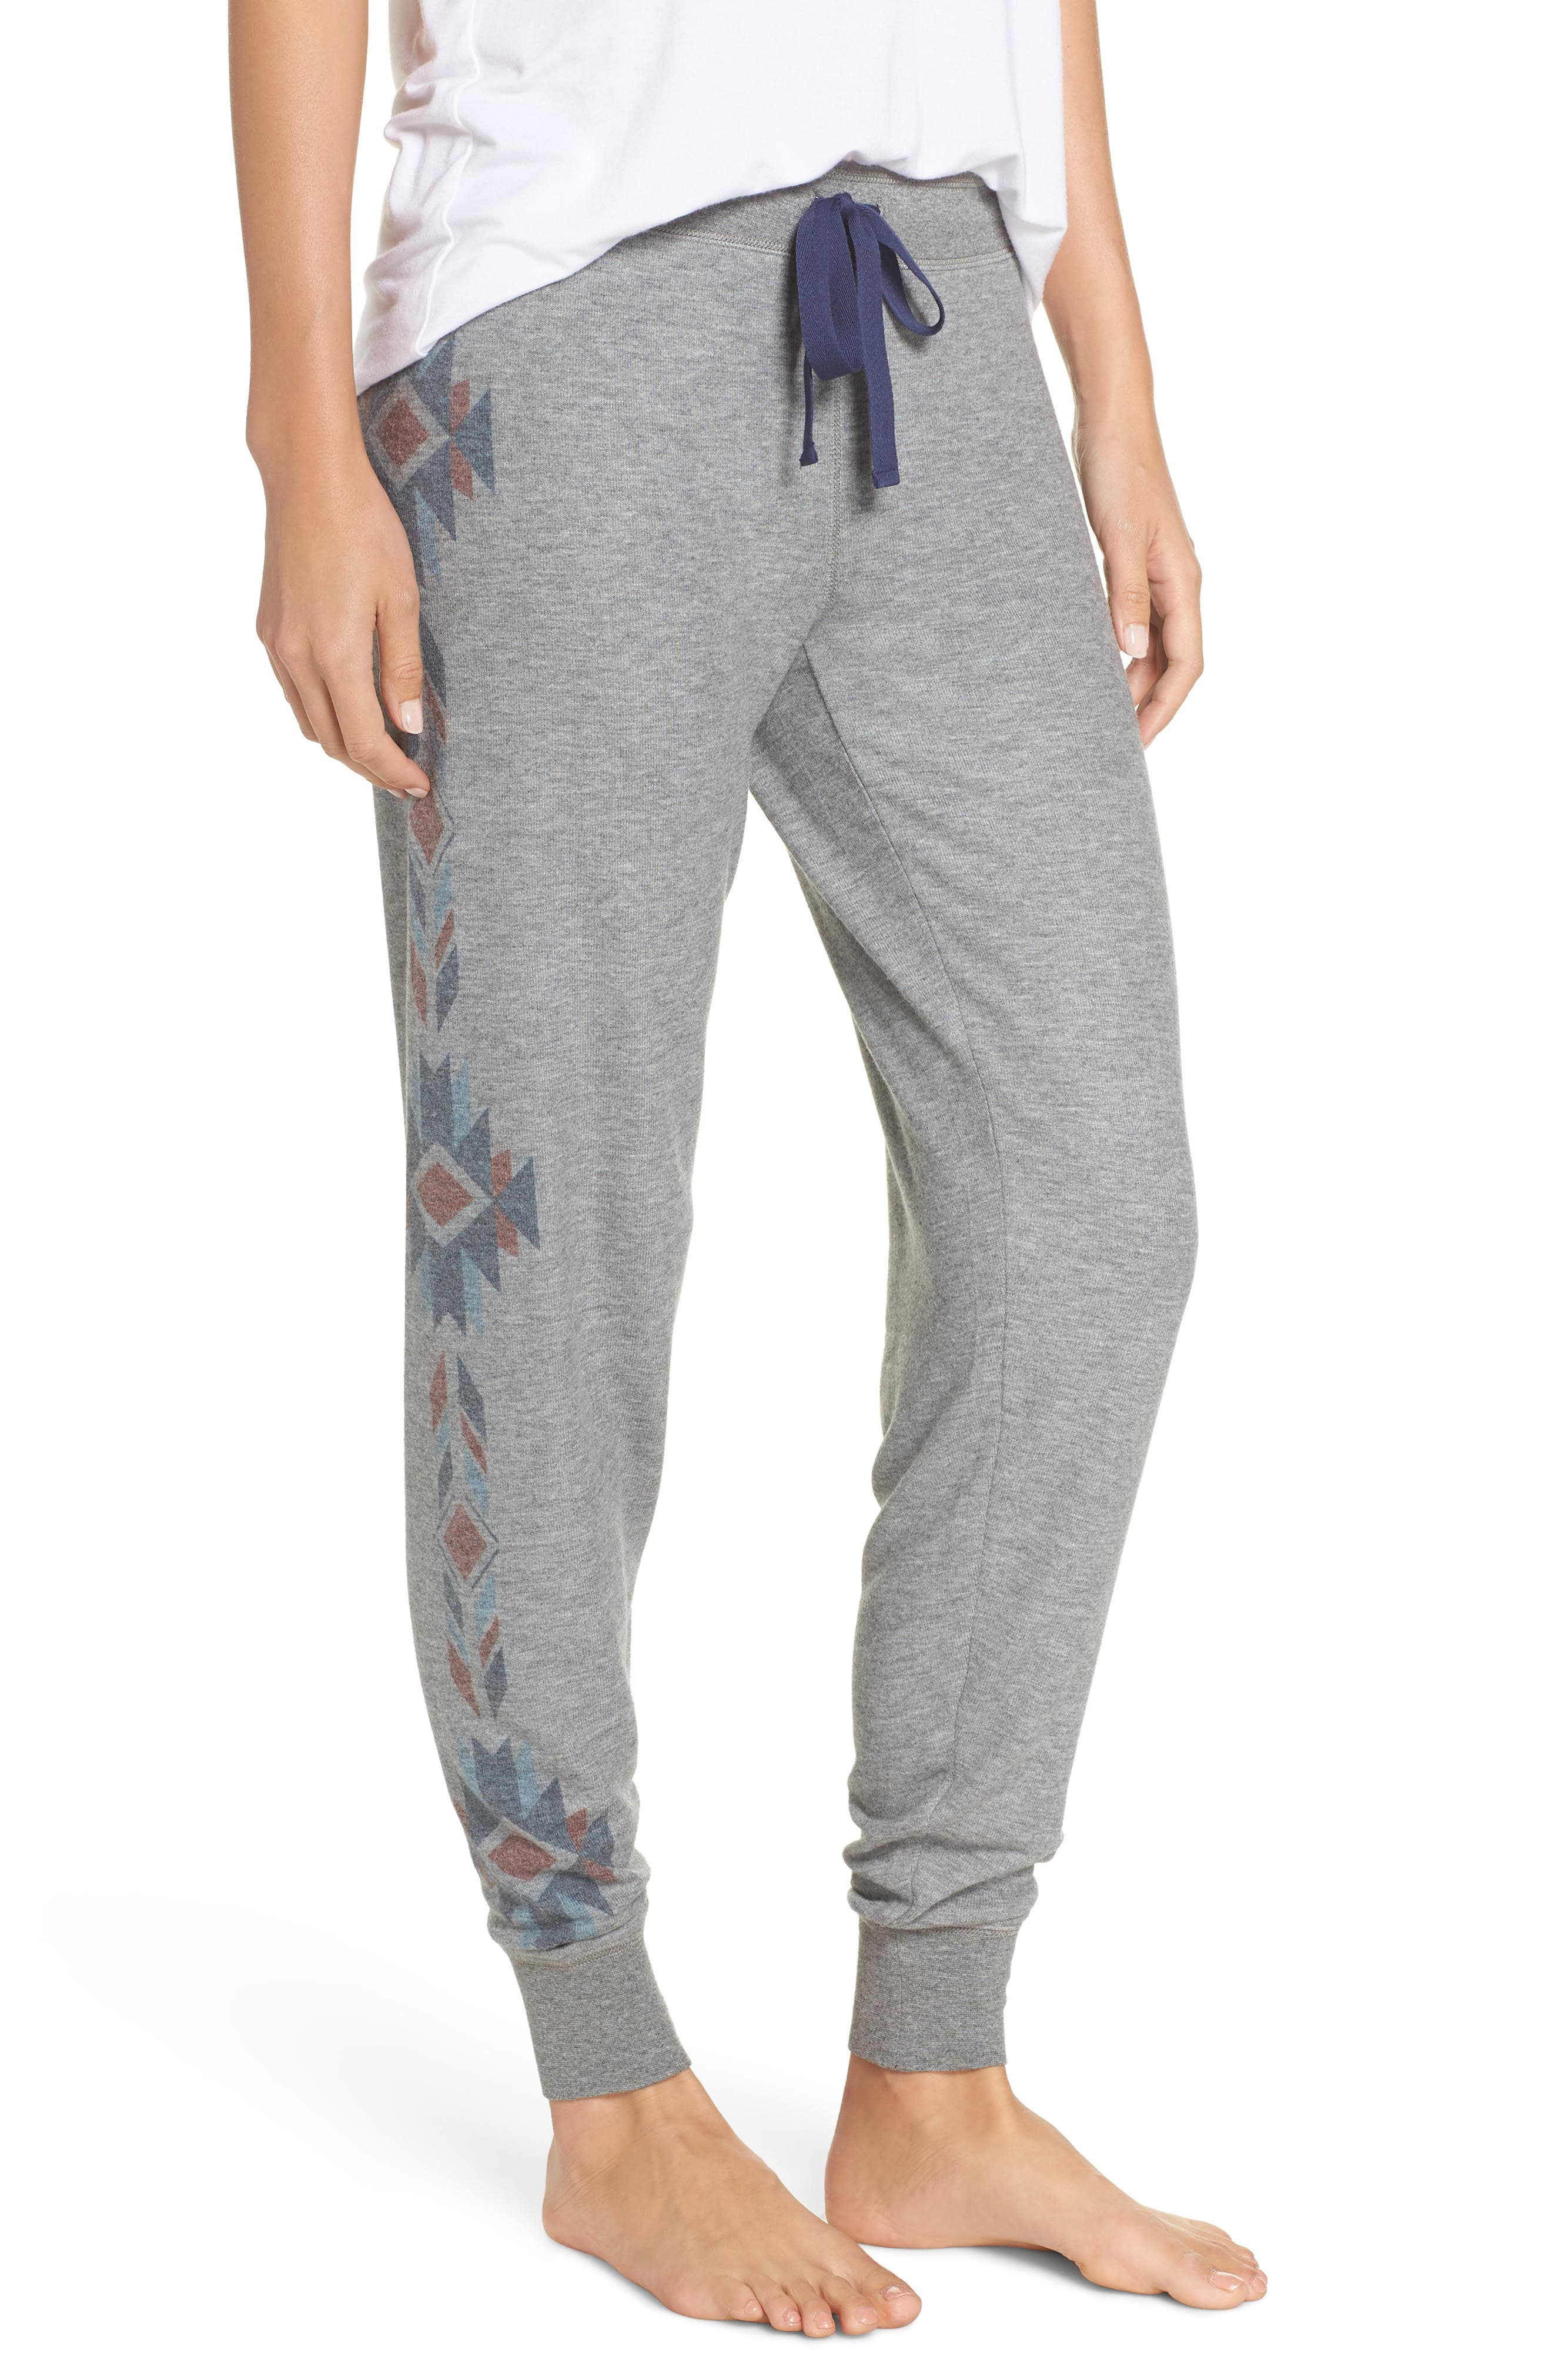 Winter Escape Jogger Pants,                             Main thumbnail 1, color,                             H GREY